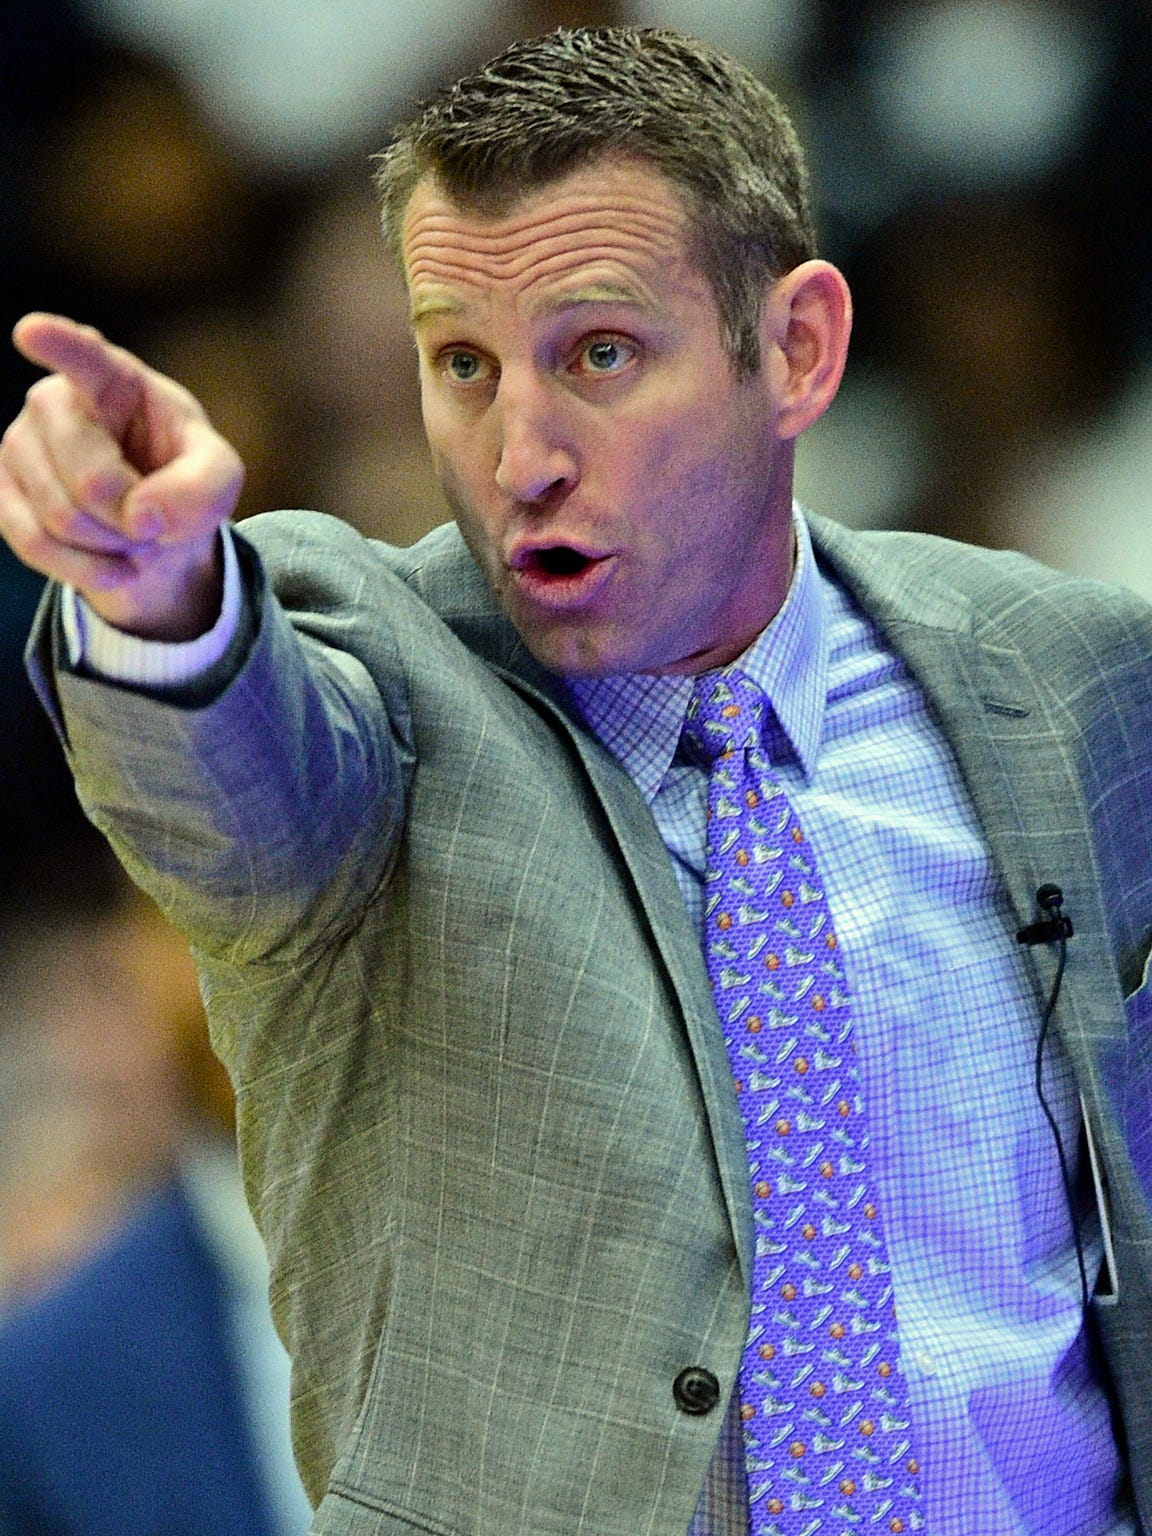 Buffalo head coach Nate Oats points during the first half of an NCAA college basketball game against Kent State, Friday, Jan. 25, 2019, in Kent, Ohio. (AP Photo/David Dermer)